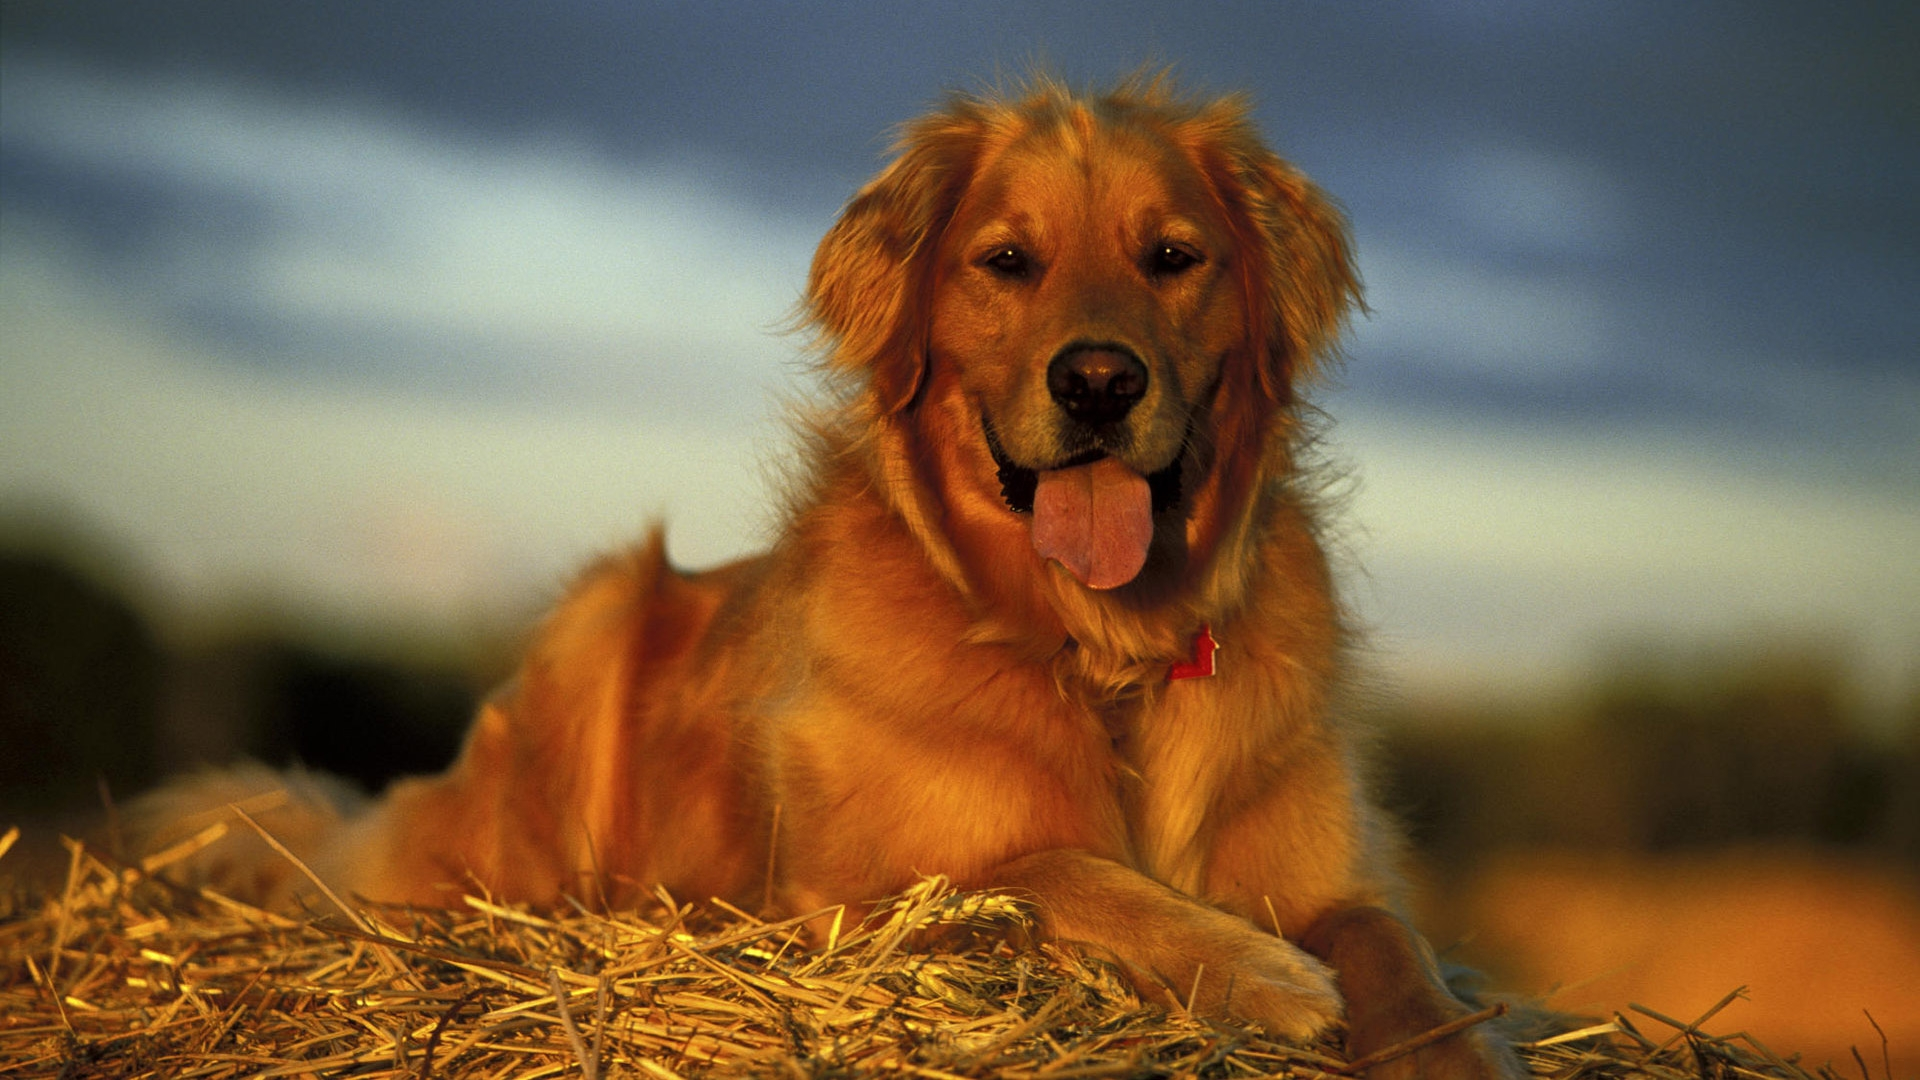 These desktop wallpapers are high definition and available in wide range of sizes and resolutions. Download Golden Retriever HD Wallpapers absolutely free ...